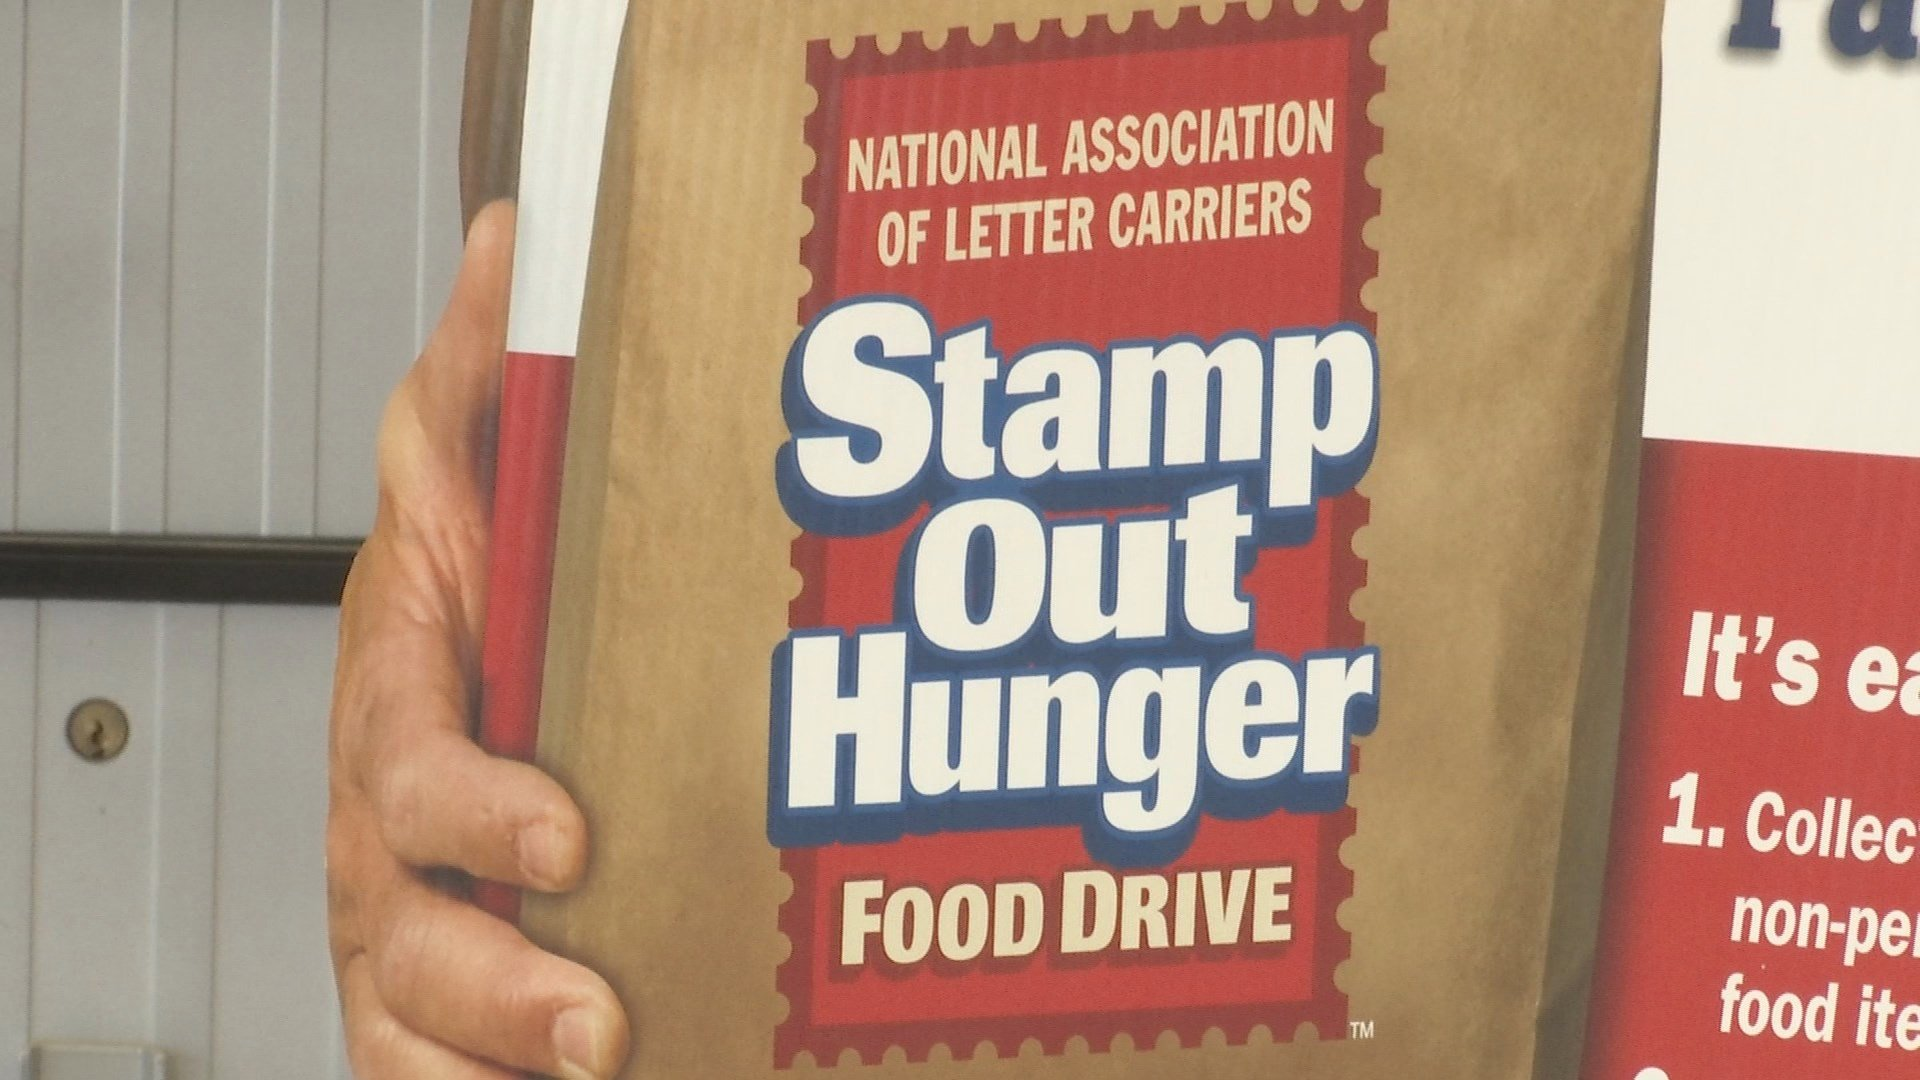 Green Bay Postal Service Hosts Stamp Out Hunger Food Drive